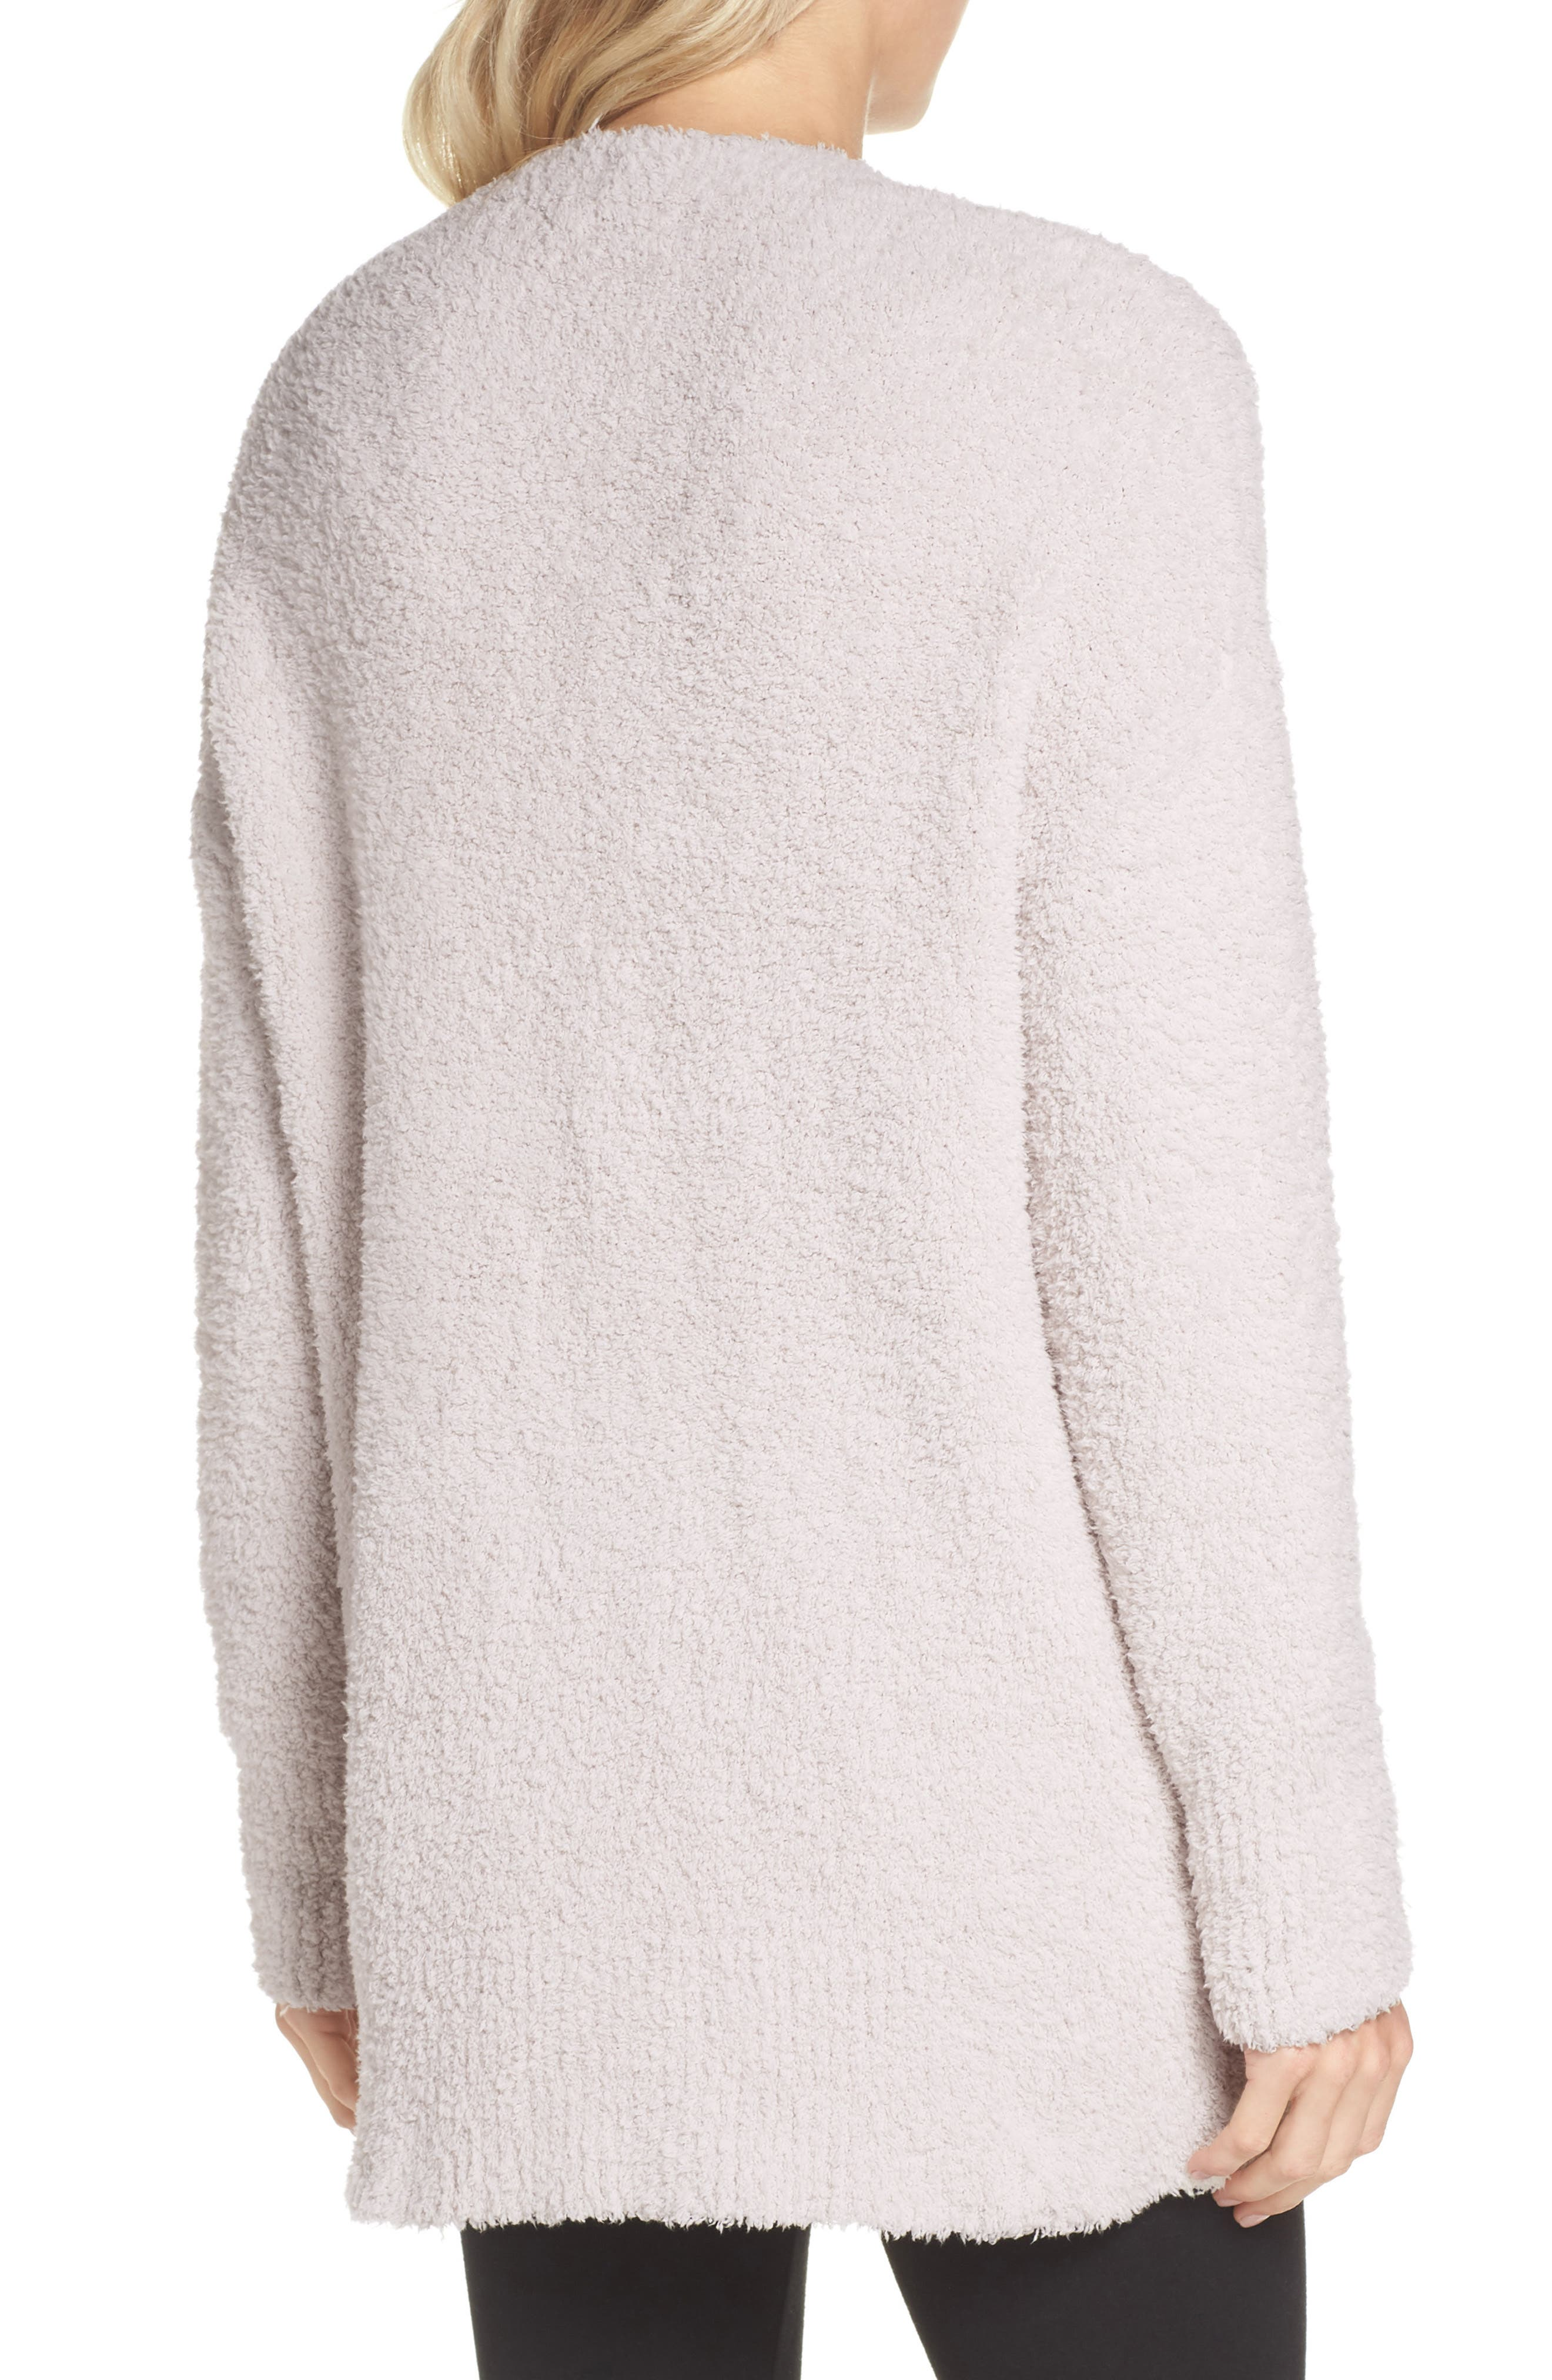 CozyChic<sup>®</sup> Cardigan,                             Alternate thumbnail 2, color,                             ALMOND